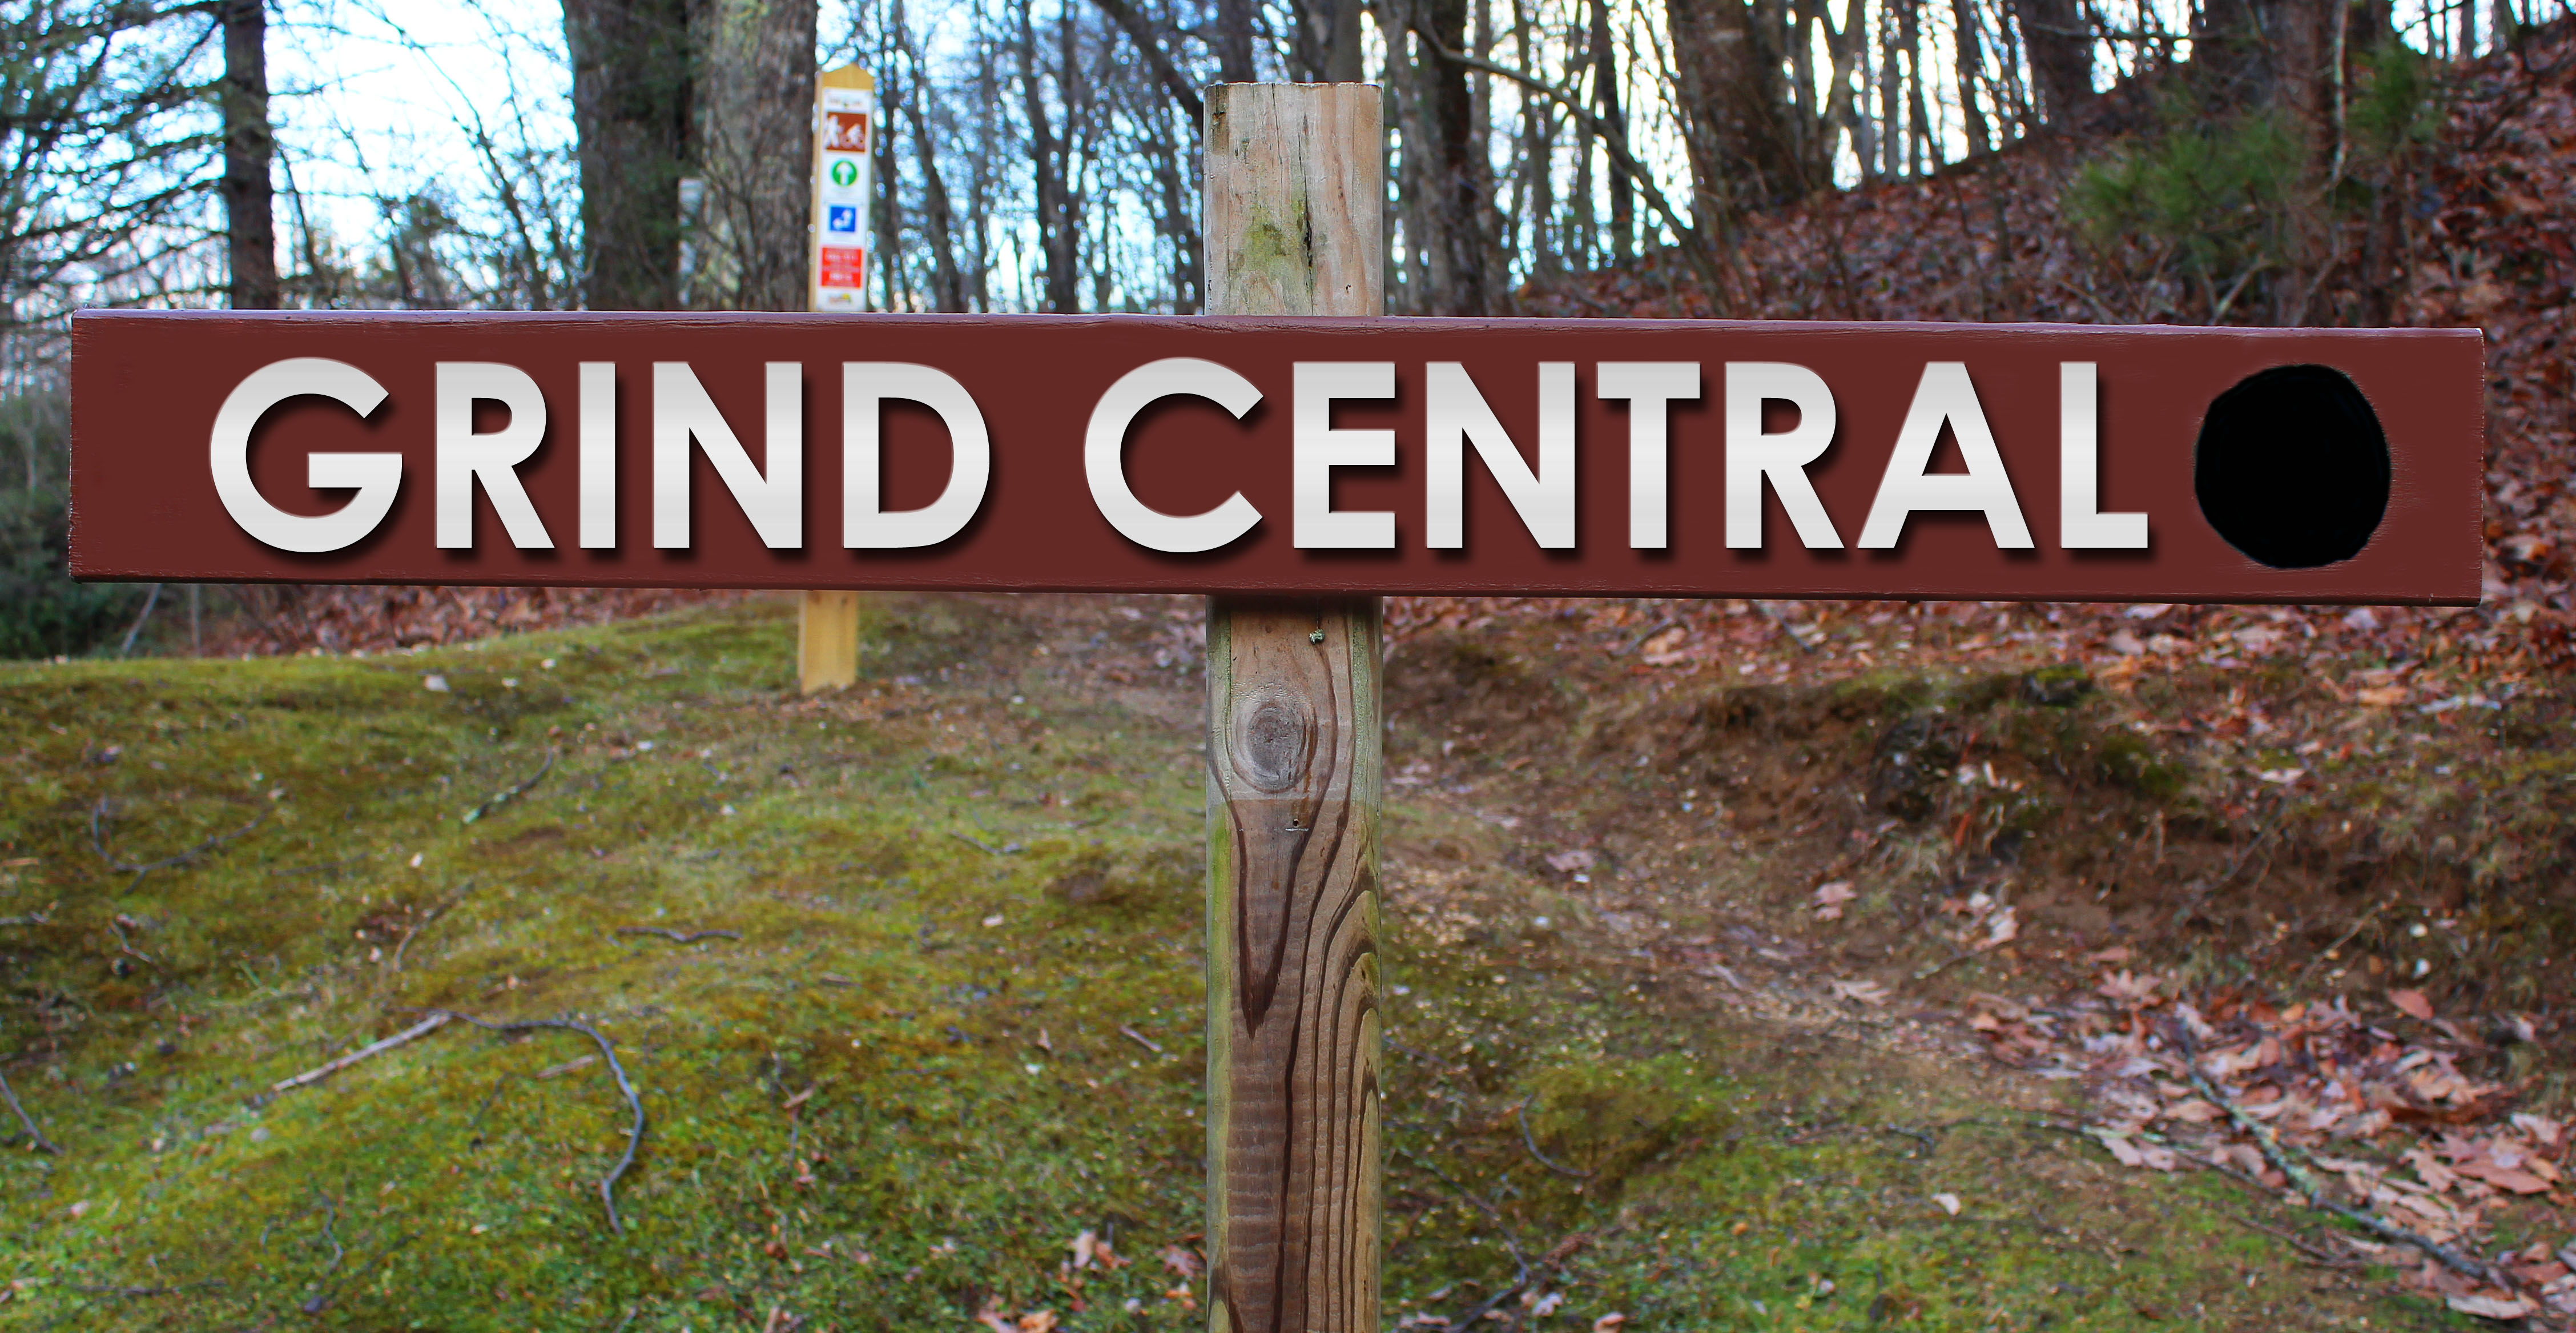 Picture of Grind Central trail sign